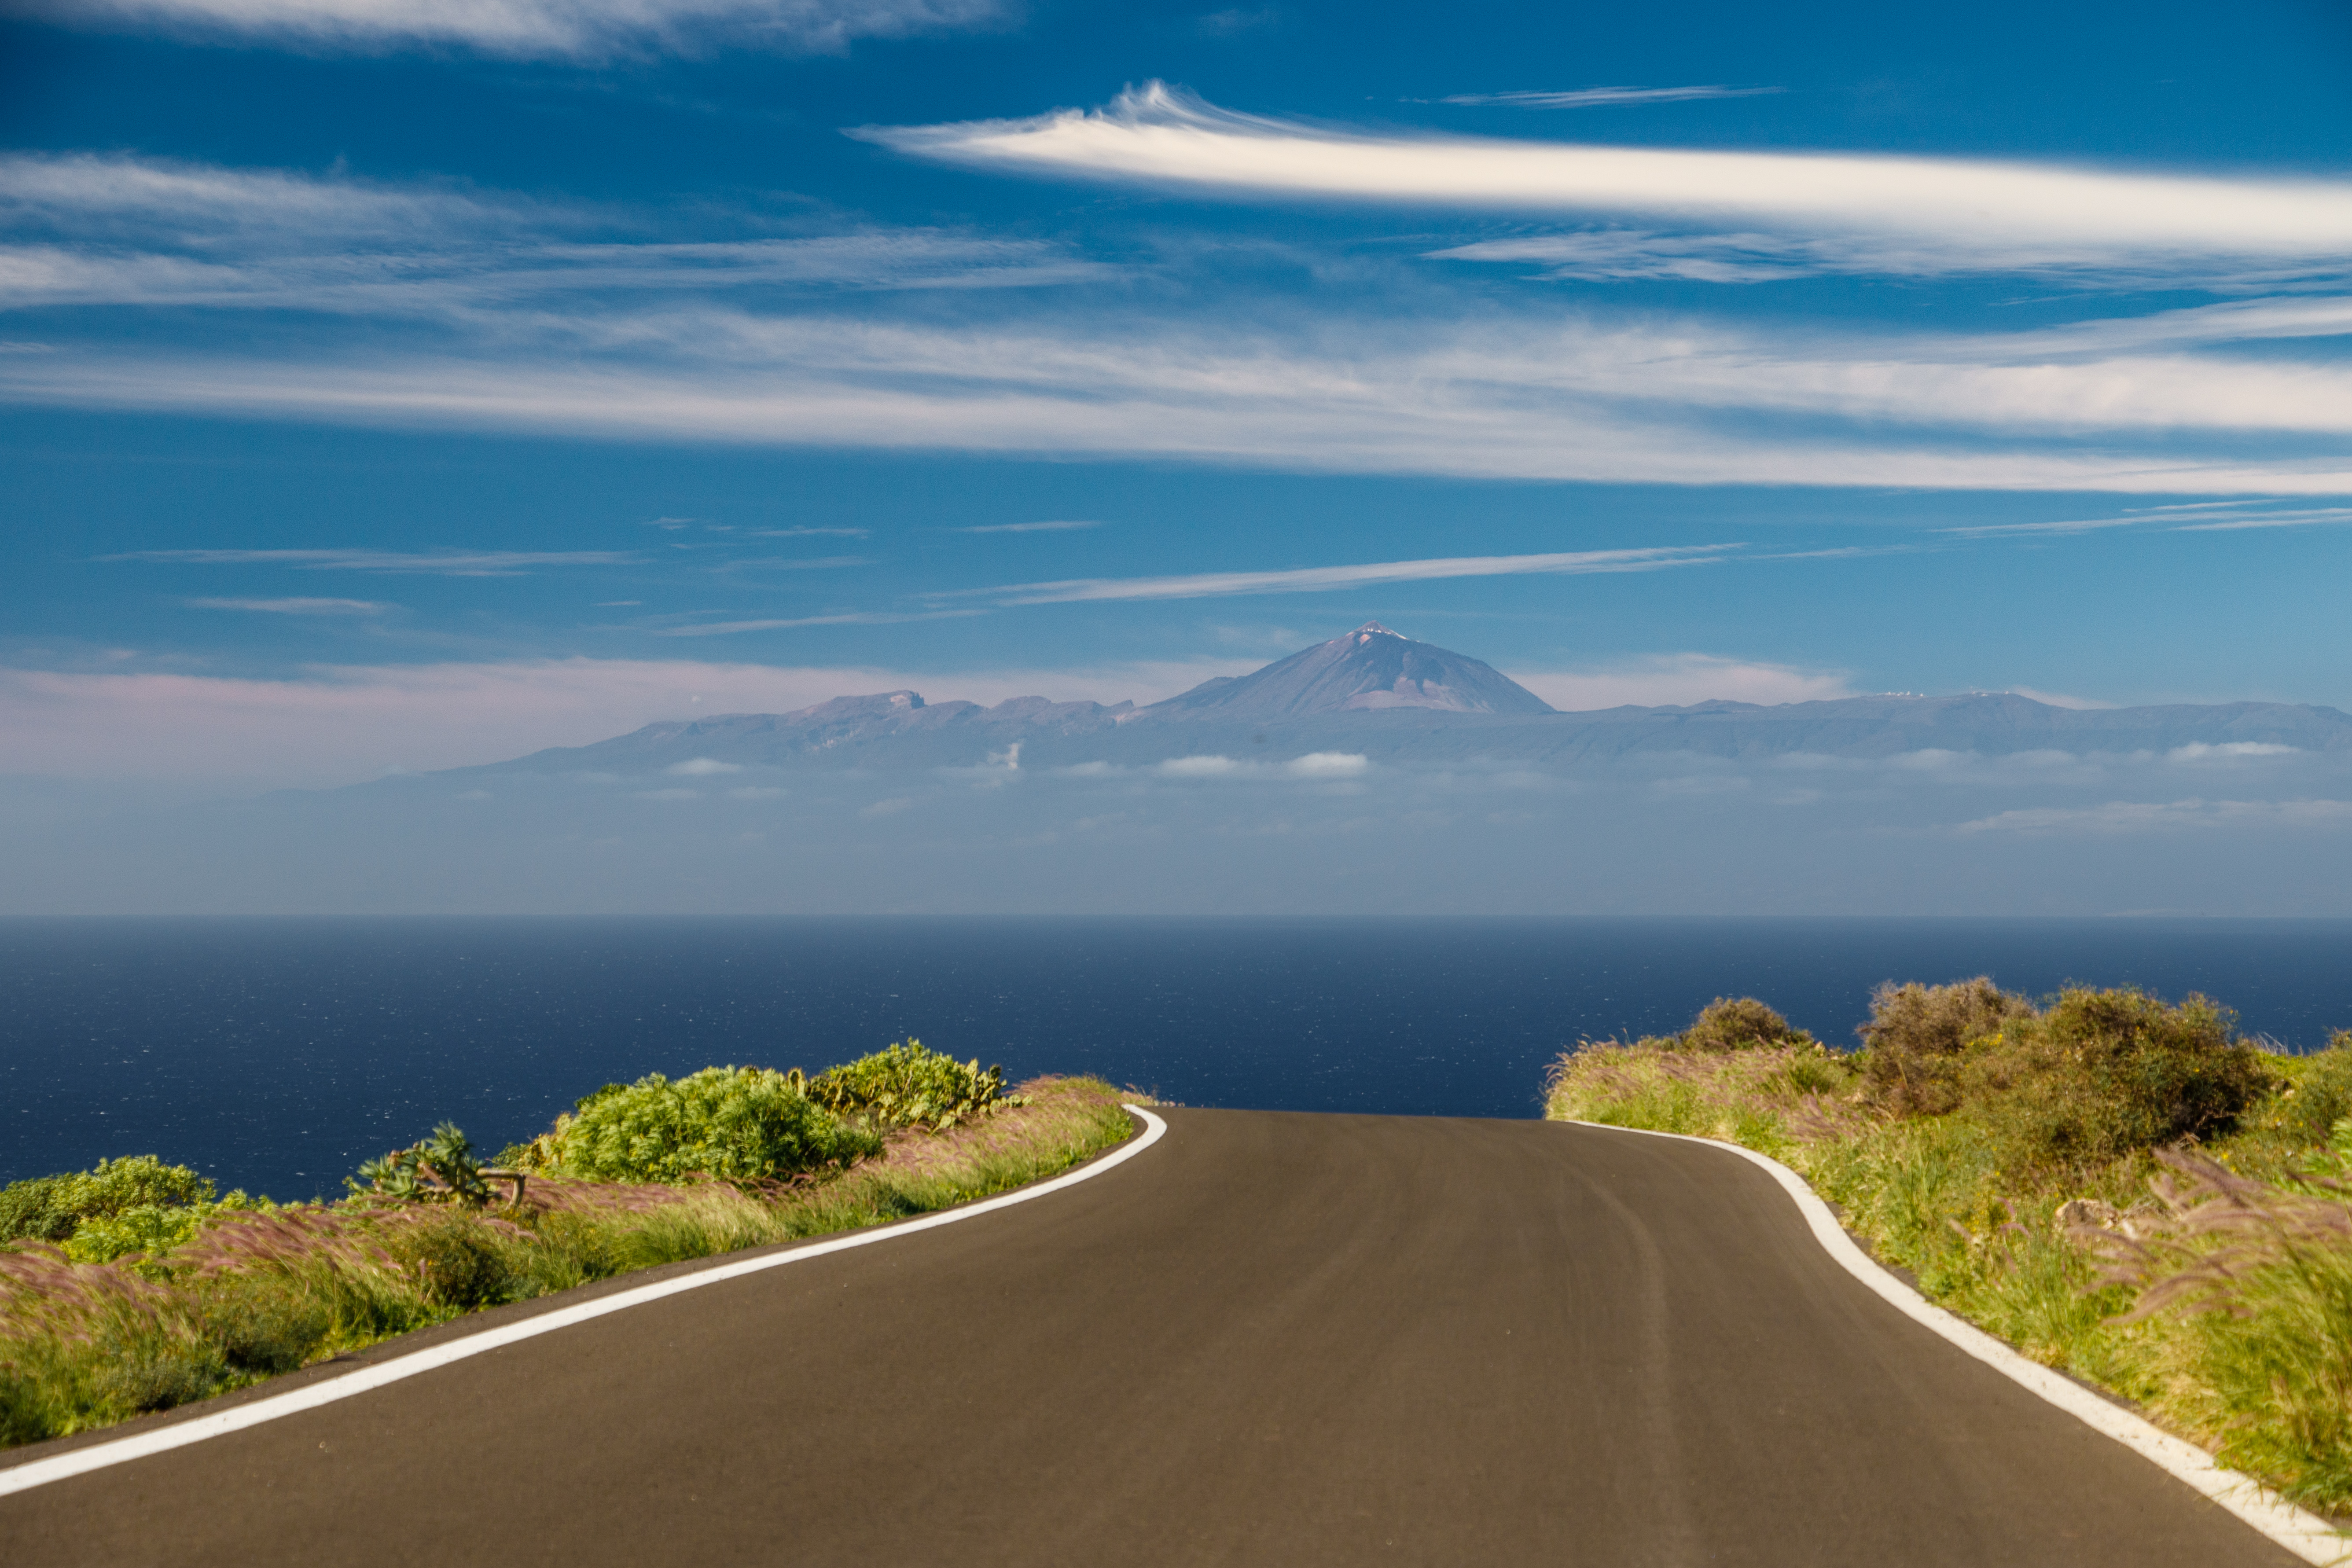 Teide on Tenerife sticking out in the sky above a rural road